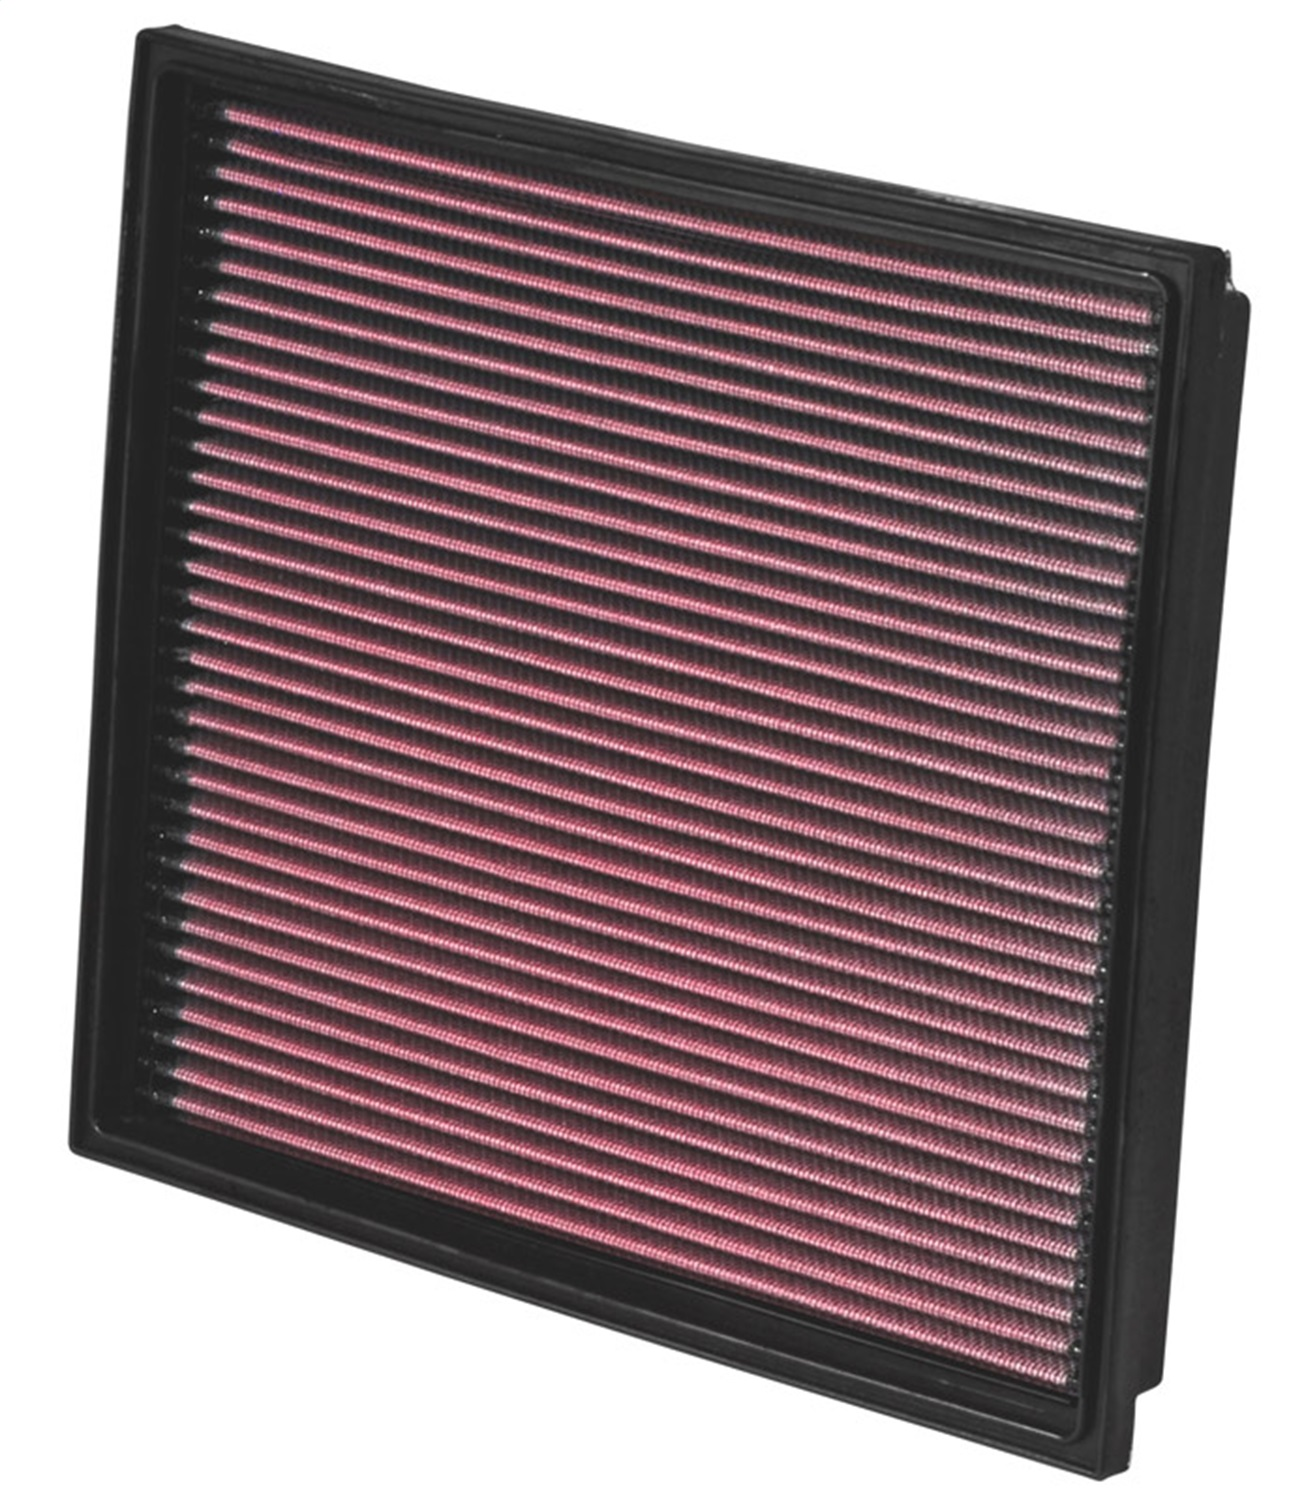 K&N Filters 33-2779 Air Filter Fits 97-03 A8 A8 Quattro S8 33-2779